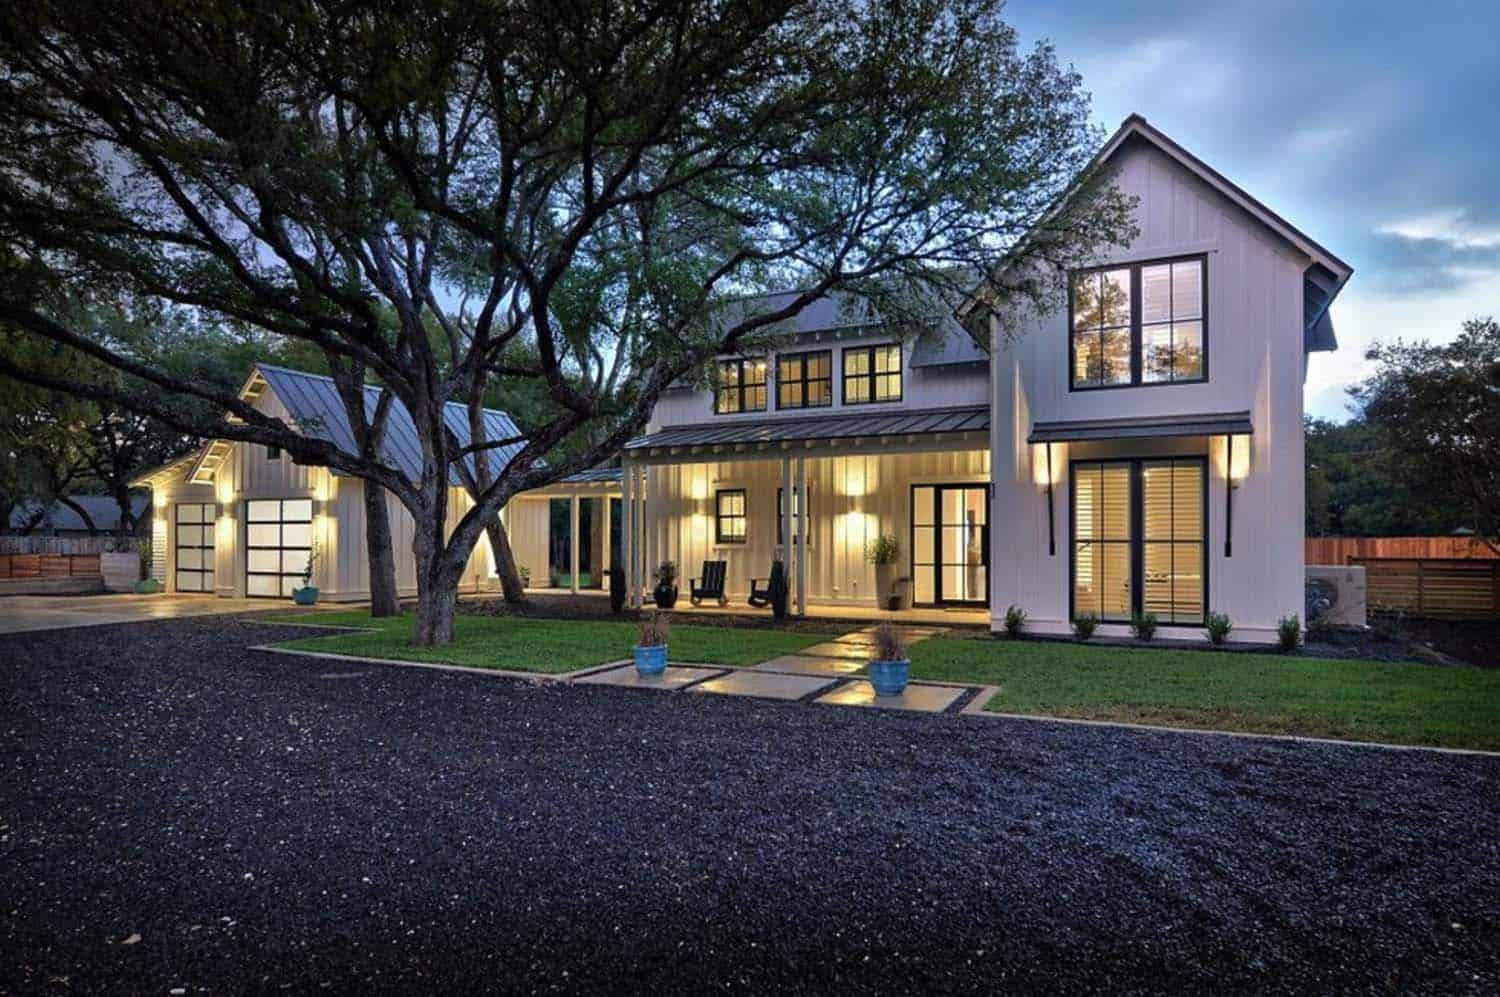 Modernized texas farmhouse filled with eye catching details for Farmhouse modern style